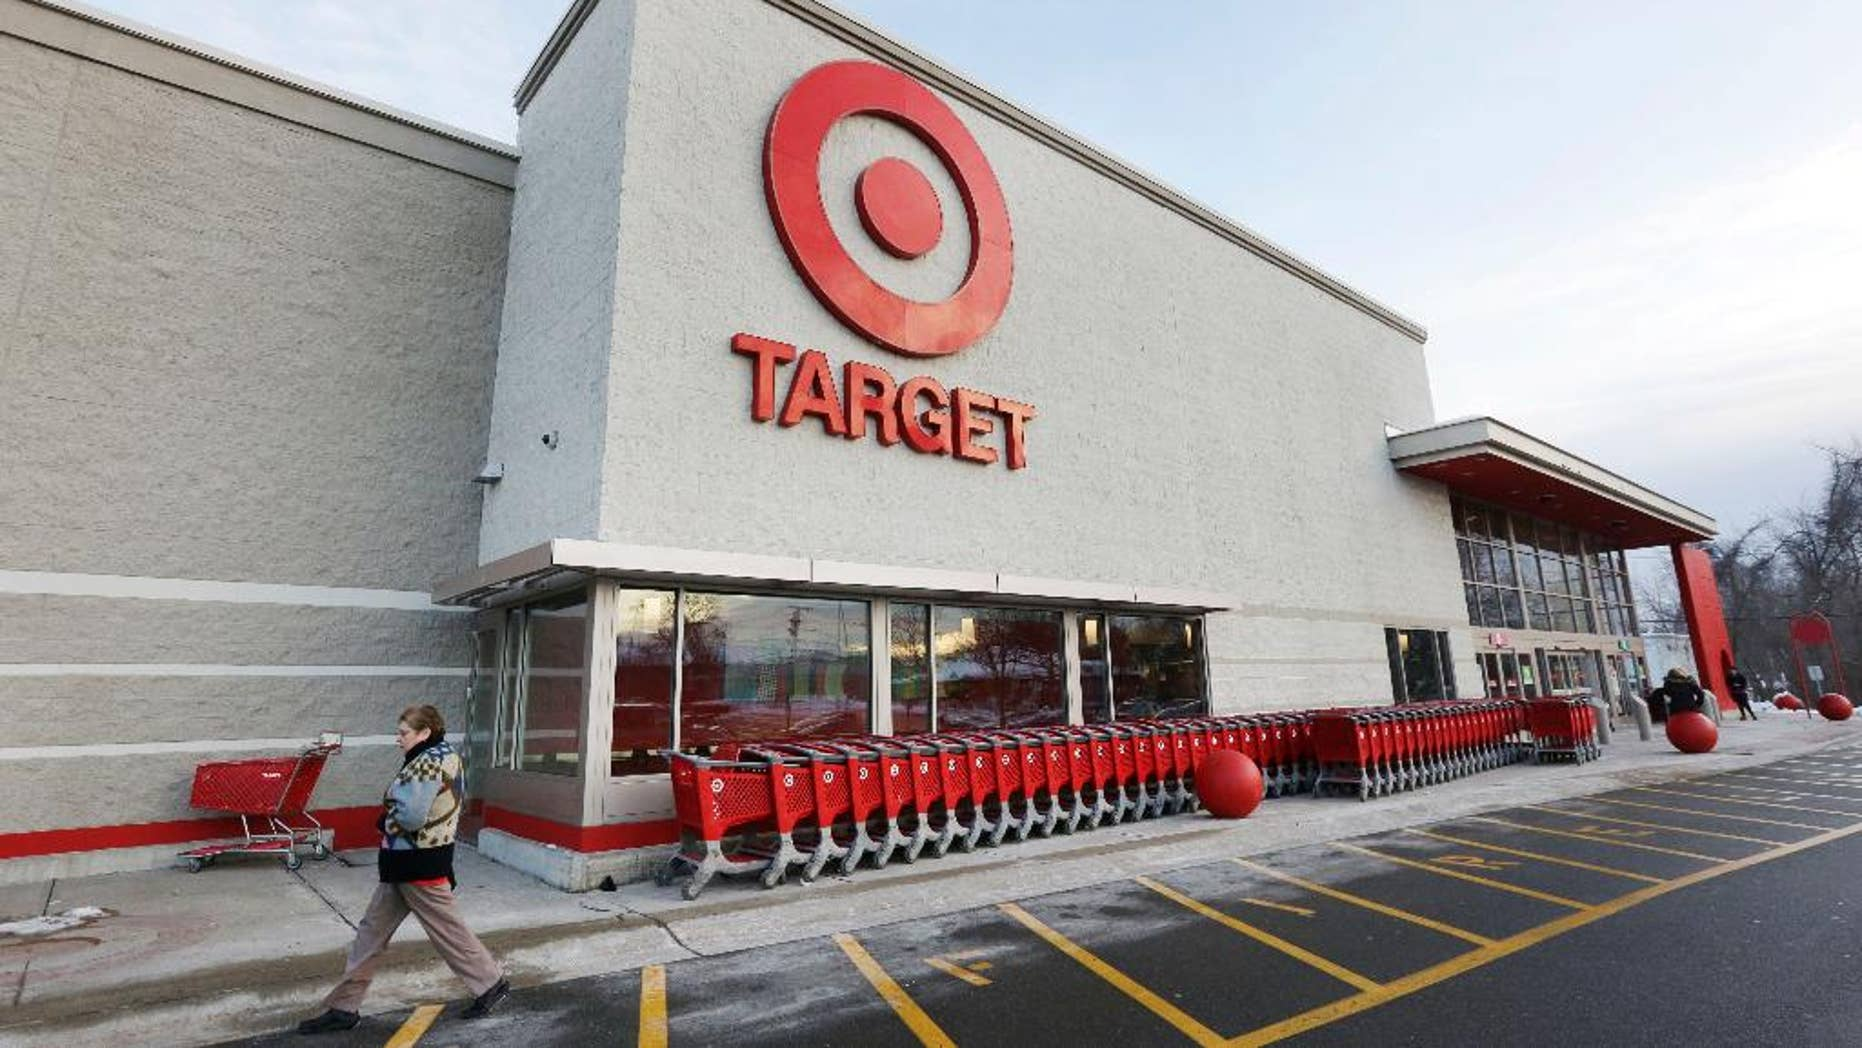 FILE - In this Dec. 19, 2013, file photo, a passer-by walks near an entrance to a Target retail store in Watertown, Mass. Target Corp. reports quarterly financial results before the market opens Wednesday, May 20, 2015. (AP Photo/Steven Senne, File)